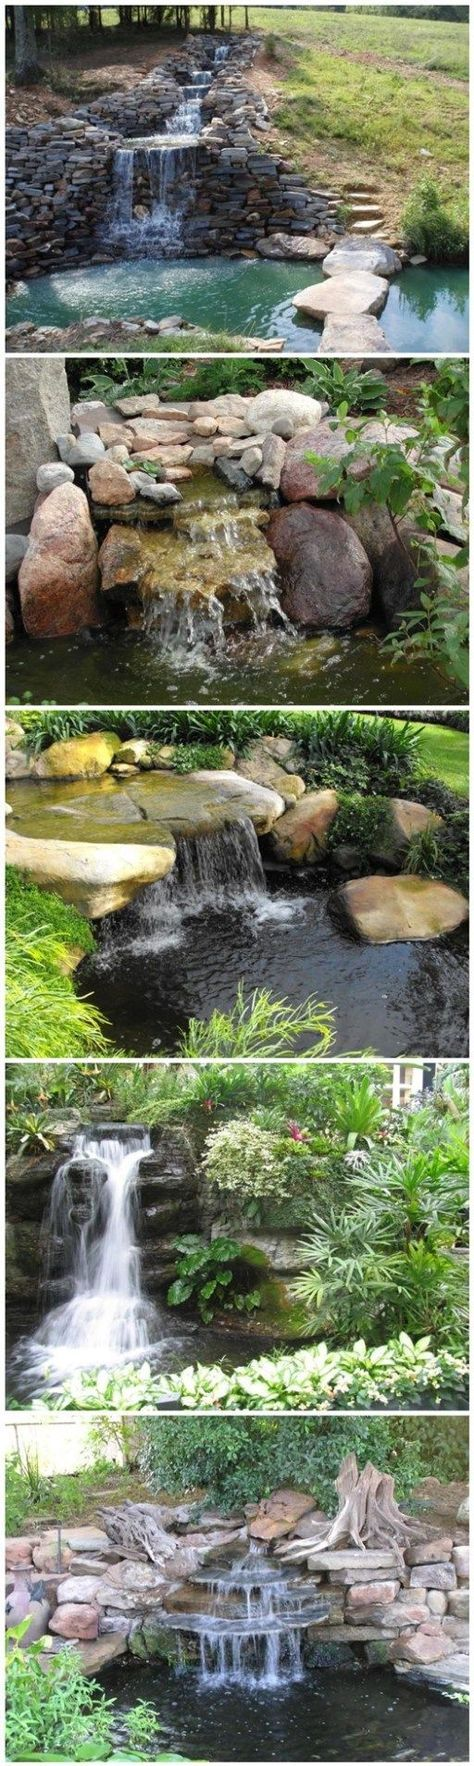 cool How To Build A Garden Waterfall Pond by http://www.dezdemon-exoticfish.space/fish-ponds/how-to-build-a-garden-waterfall-pond/